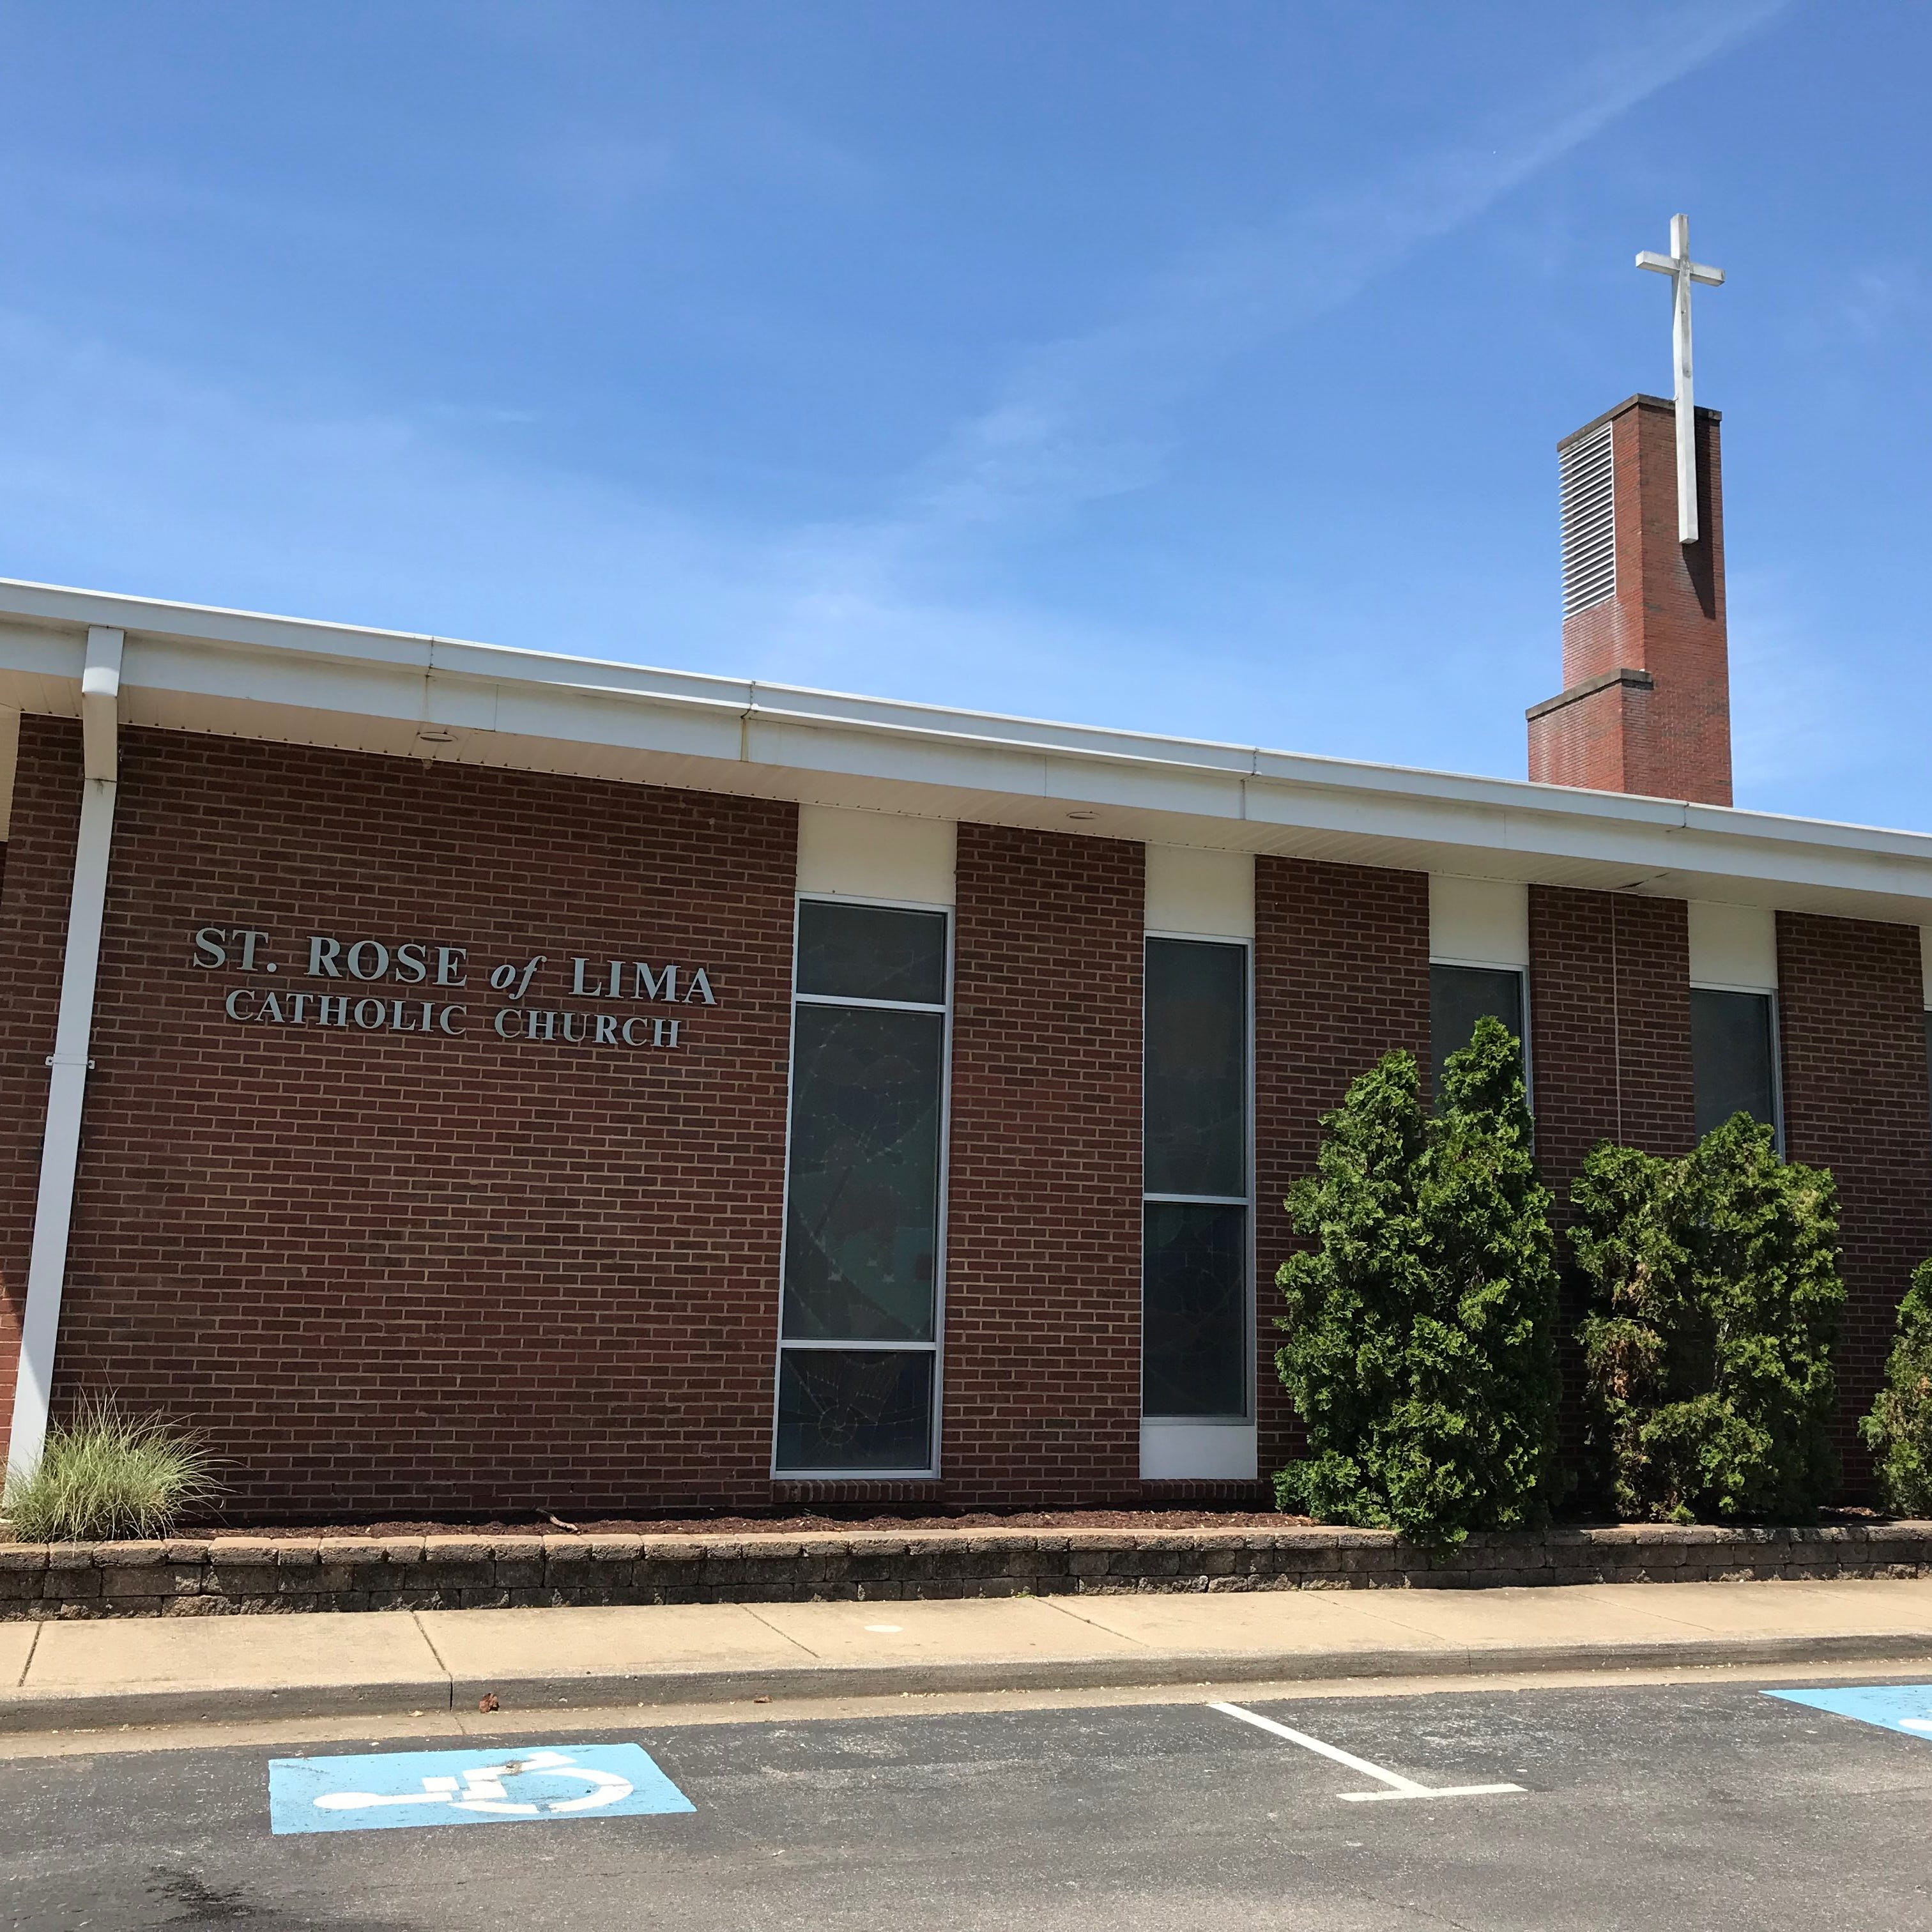 Saint Rose of Lima Catholic Church investigating $160K theft, pastor says